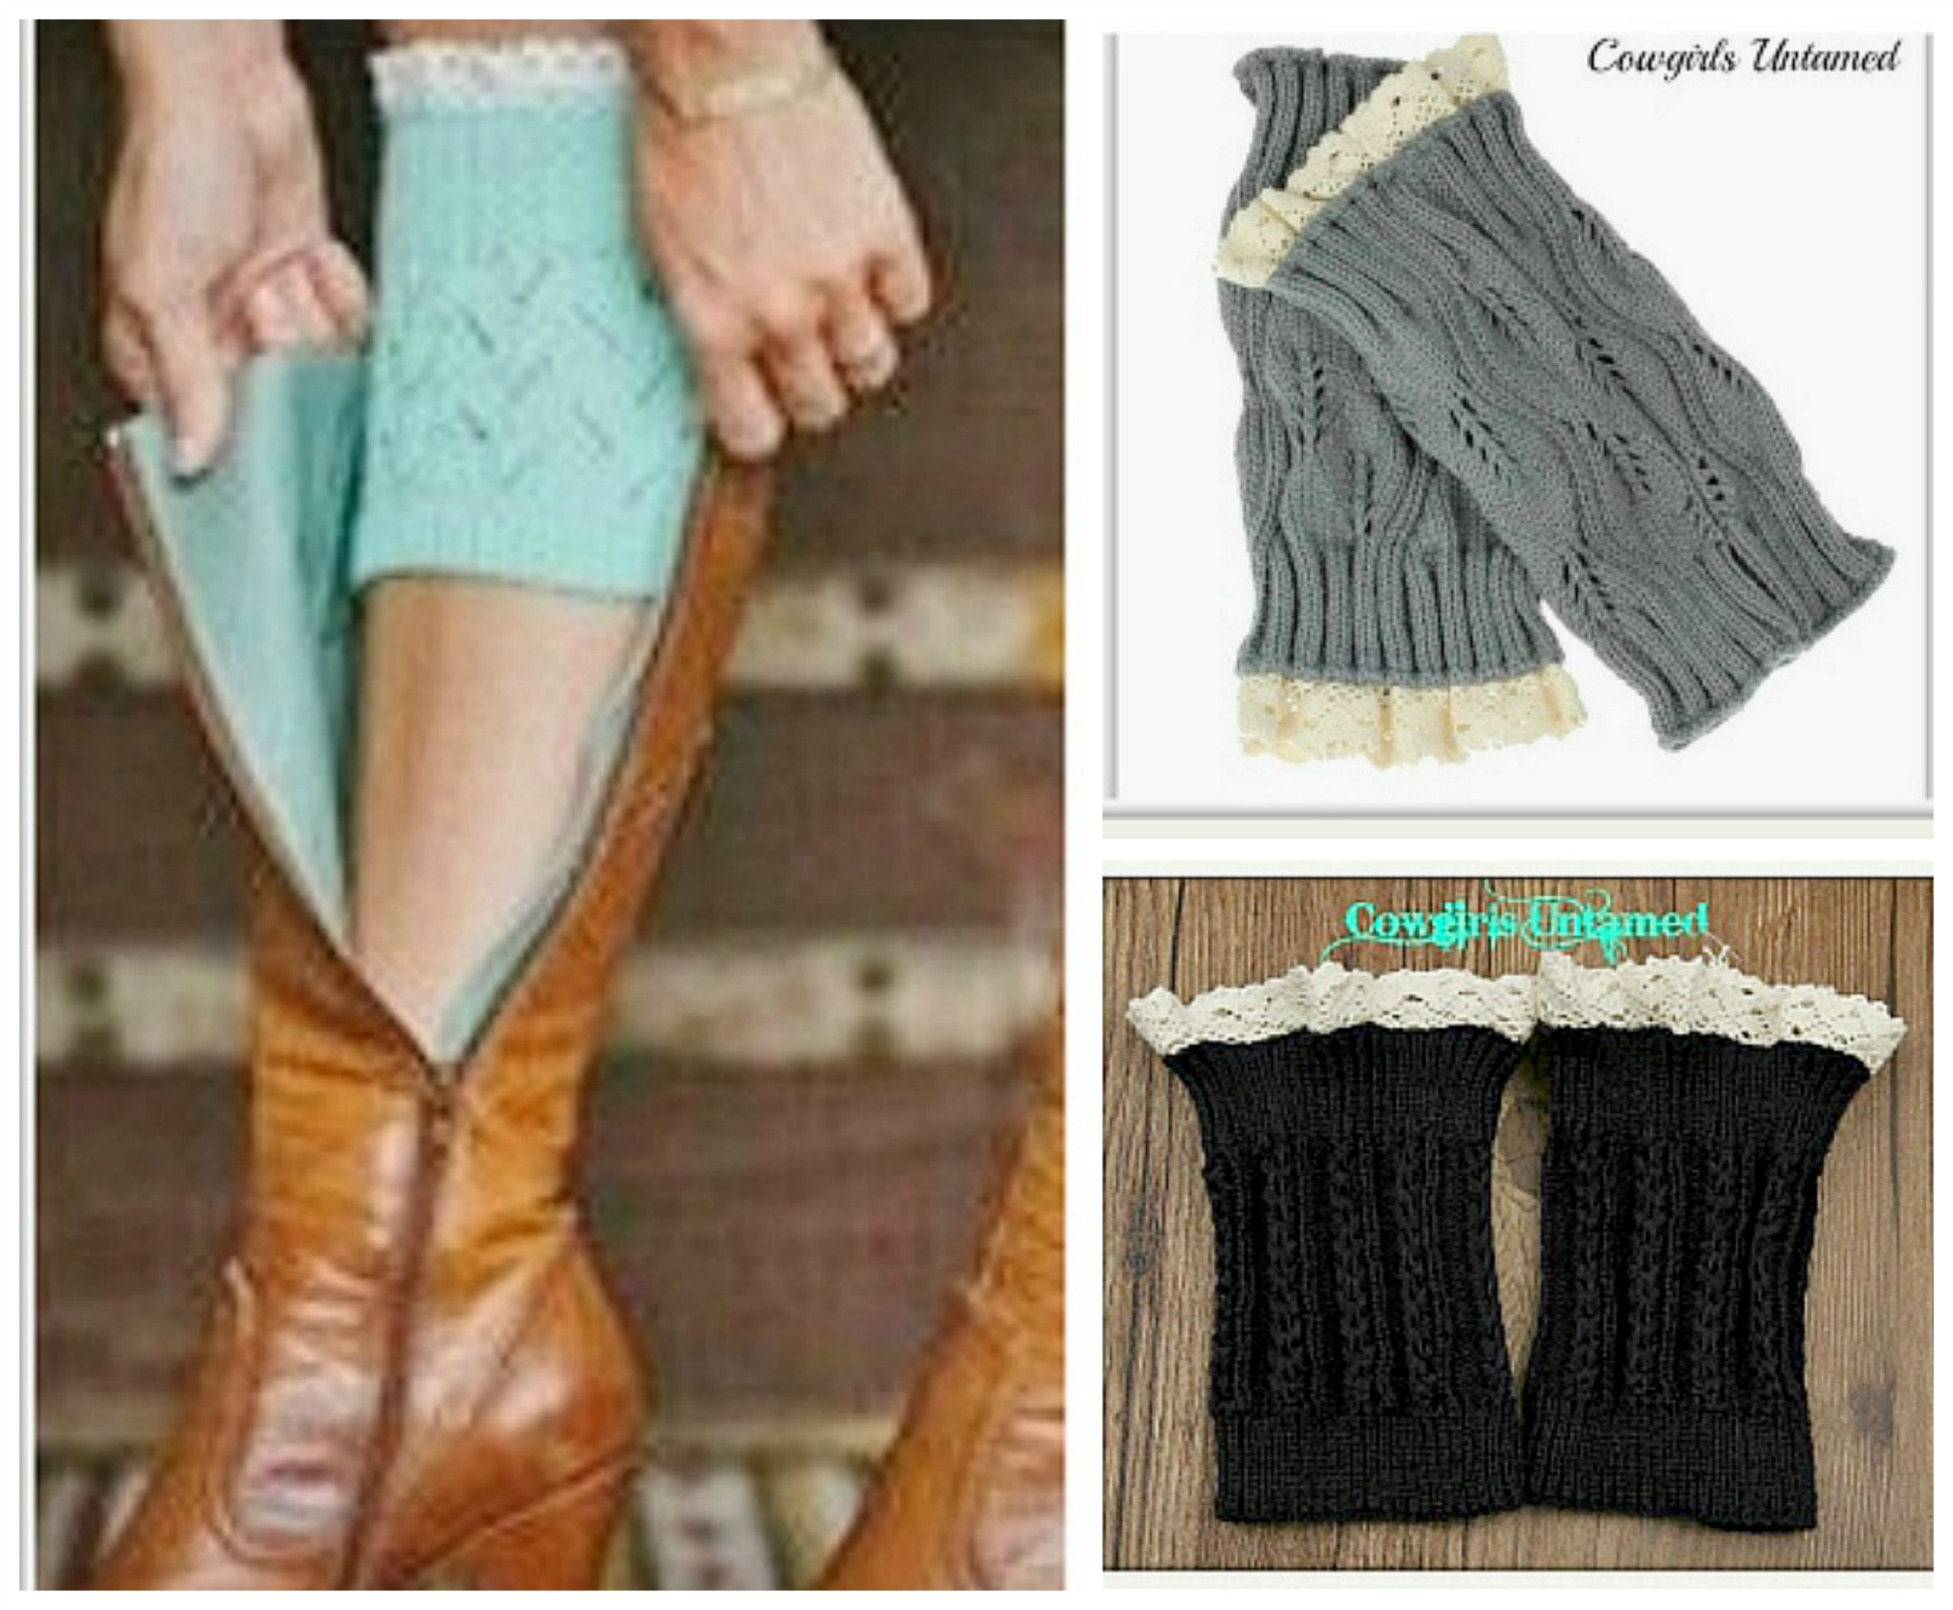 COWGIRL GYPSY BOOT GARTER Cream Crochet Lace  Boot Toppers Cuffs Leg Warmers